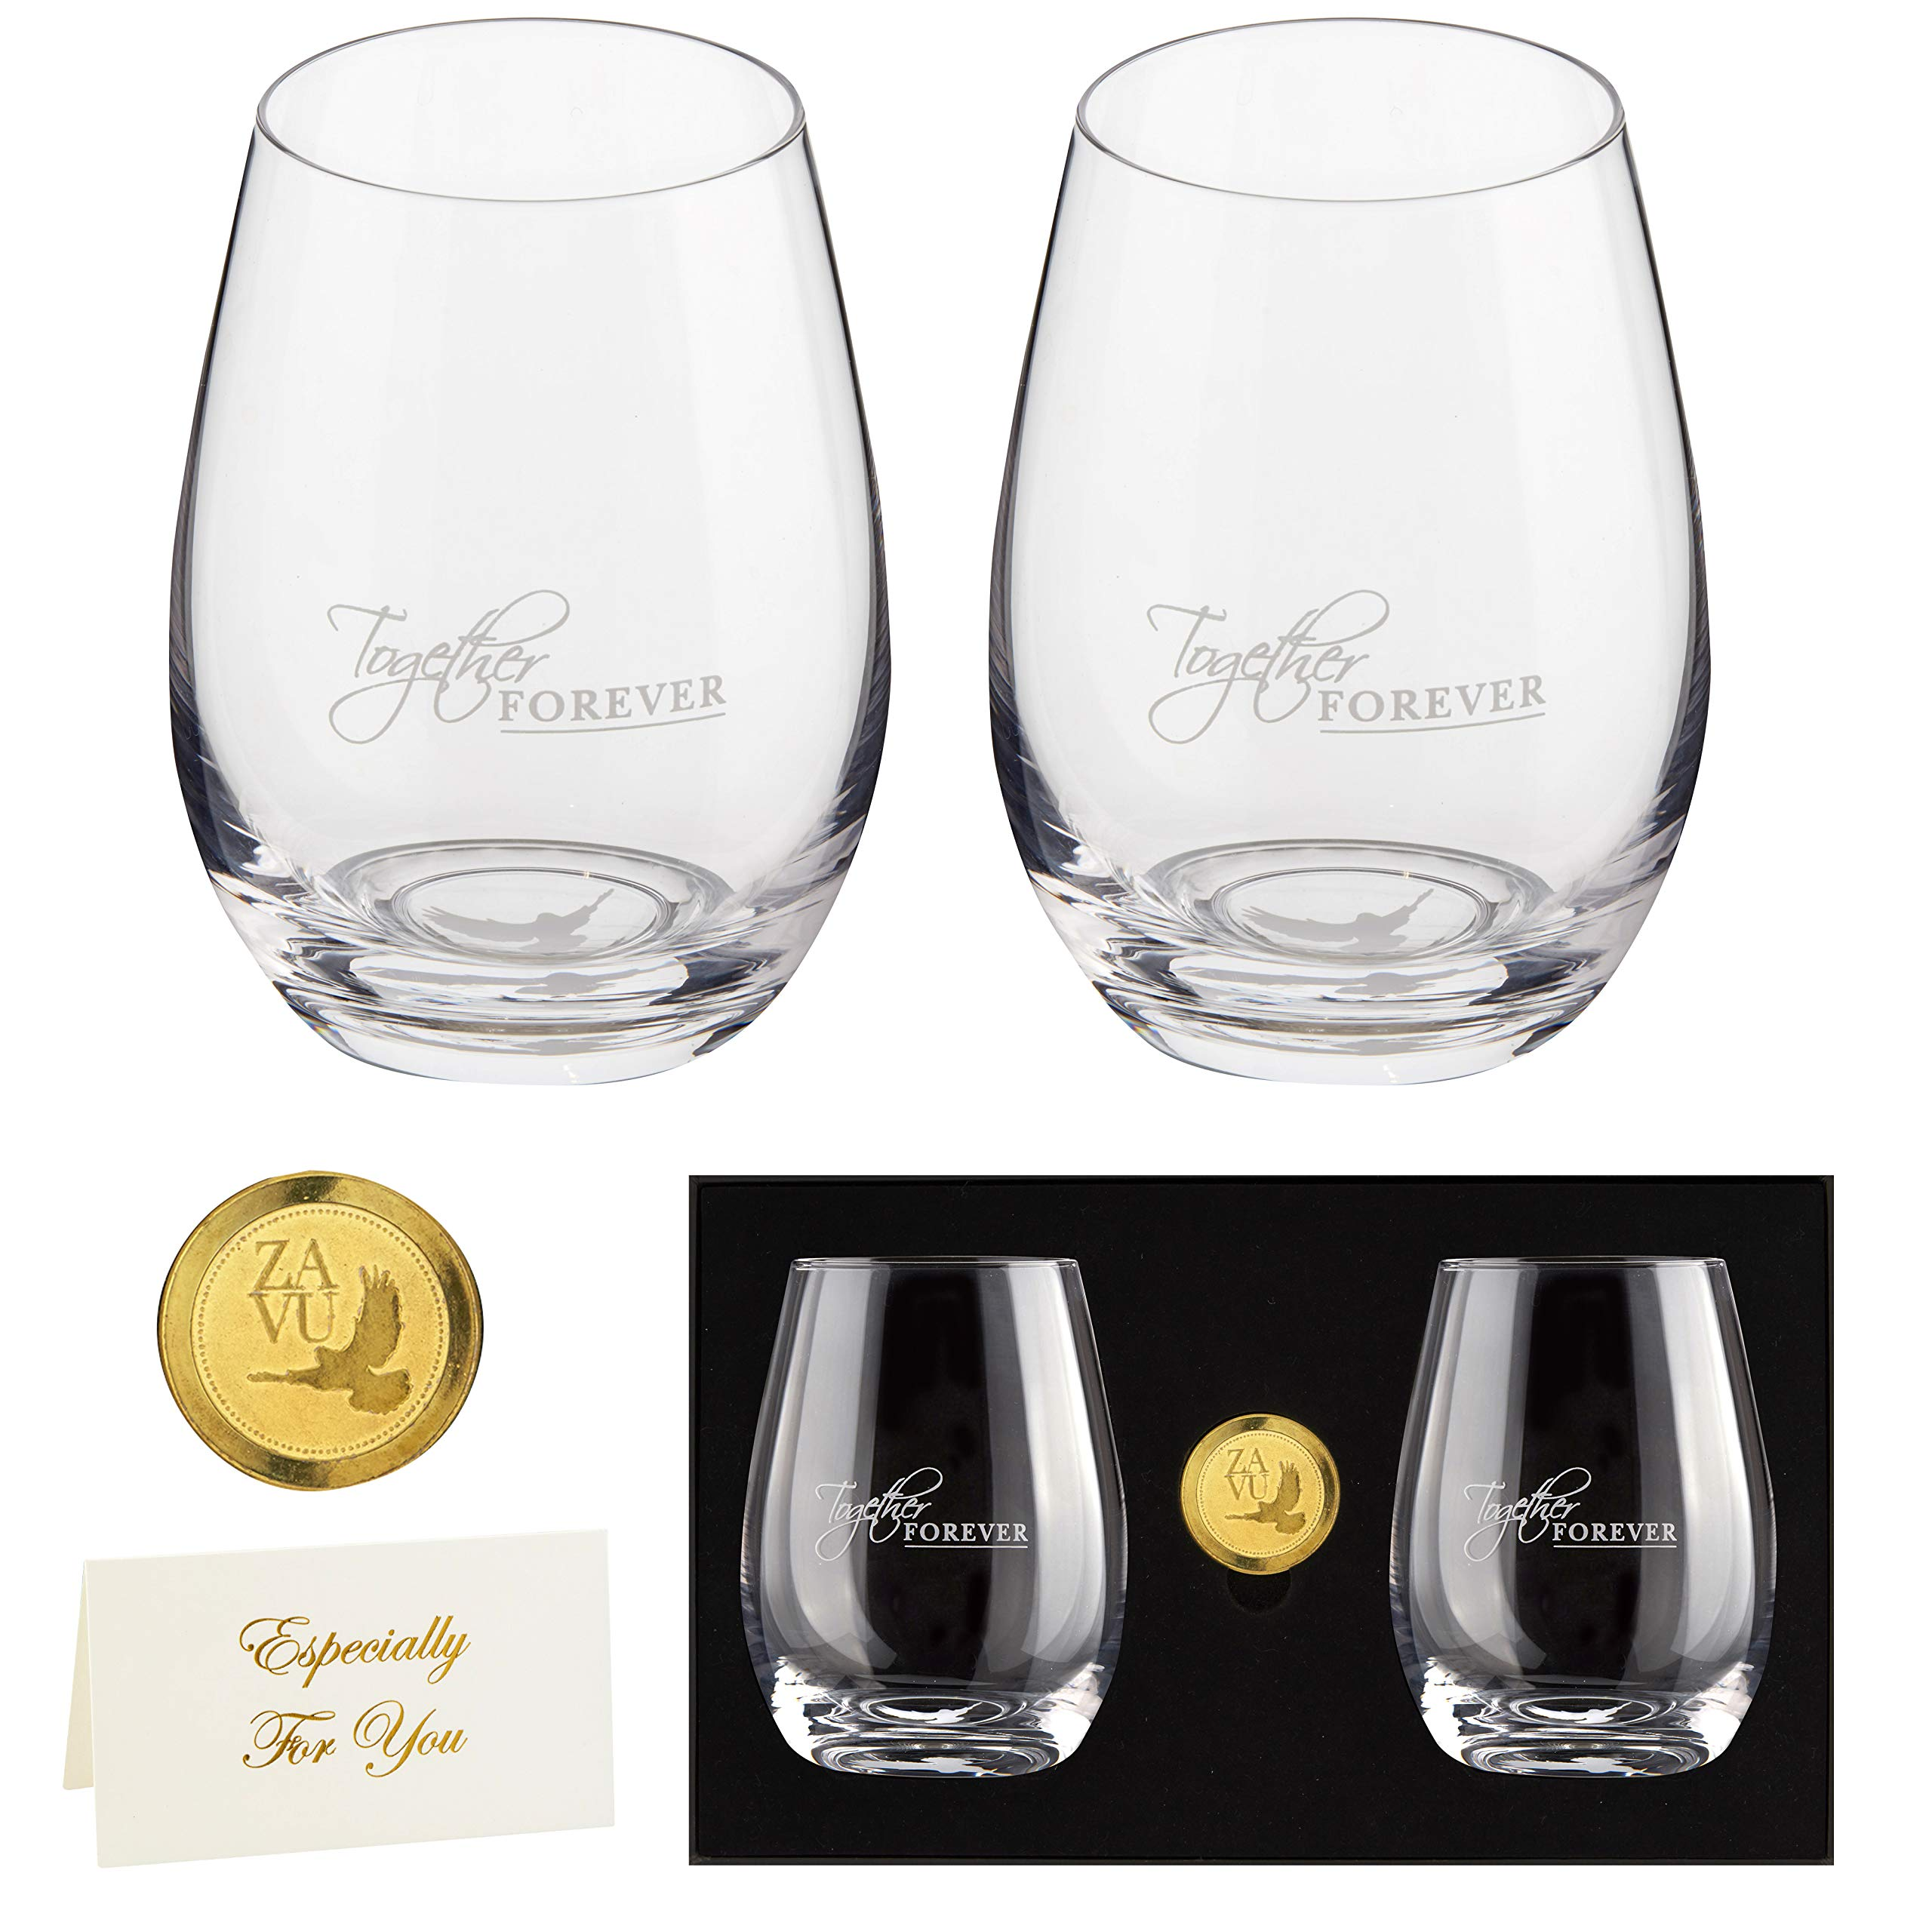 Anniversary Gift- Crystal Stemless Wine Glasses Set of 2 | Precision Lead Free Hand Blown | Large 22oz | Ready To Go gift, gift card + engravable gold coin | Anniversary Gift for Couple, Wedding Gift by ZAVU